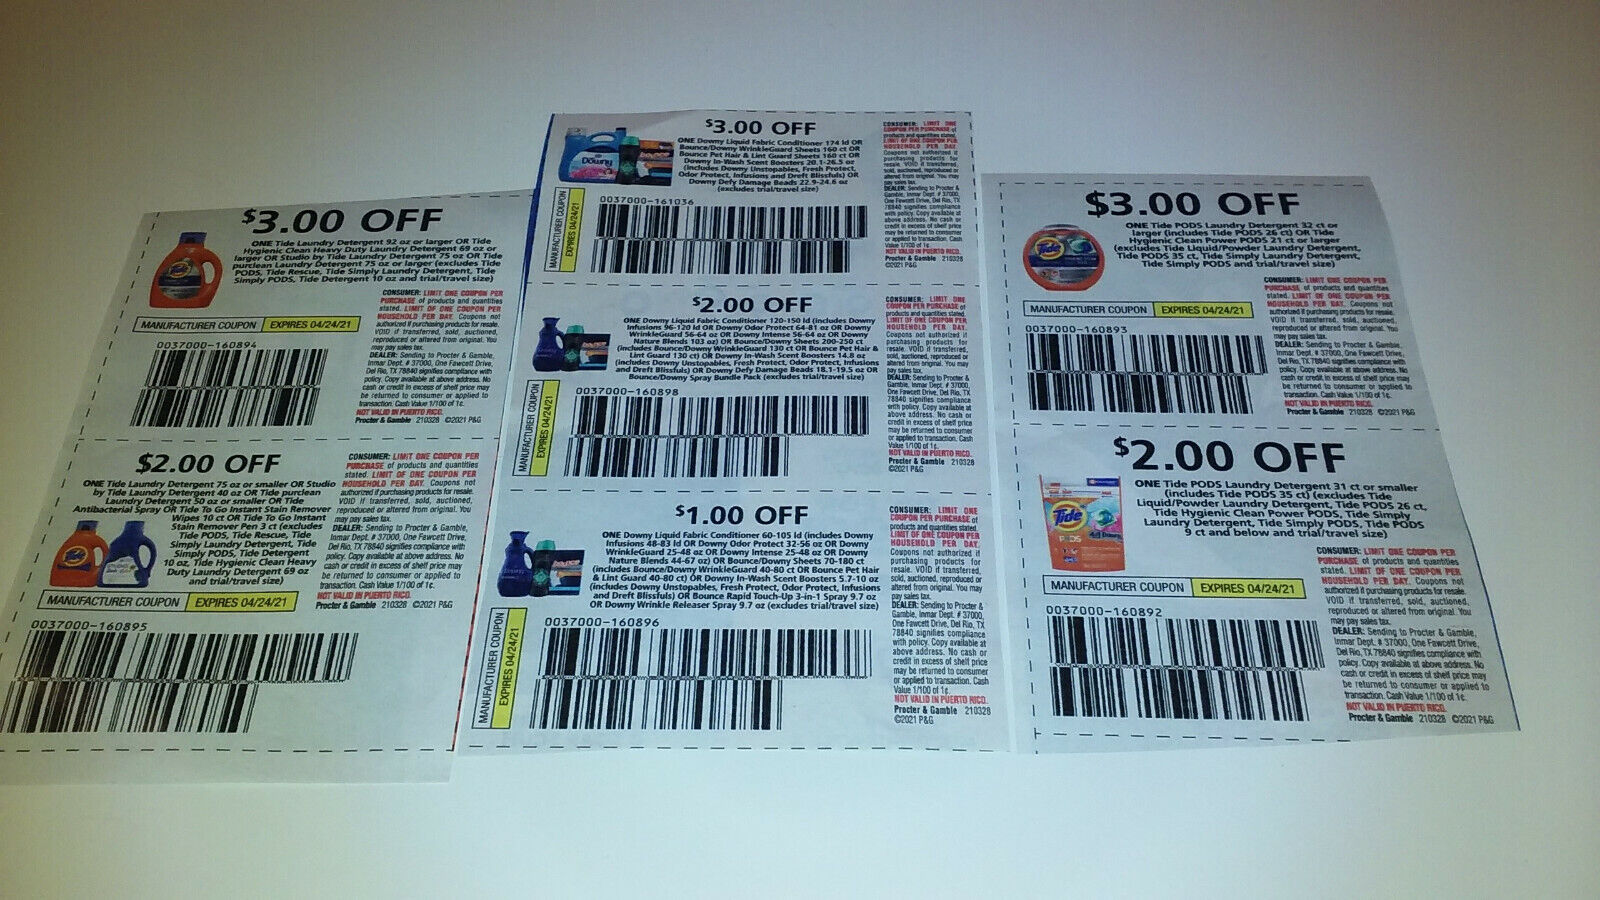 TIDE LAUNDRY DETERGENT, TIDE PODS, DOWNY, BOUNCE COUPONS - EXPIRATION 4/24/21 - $1.75